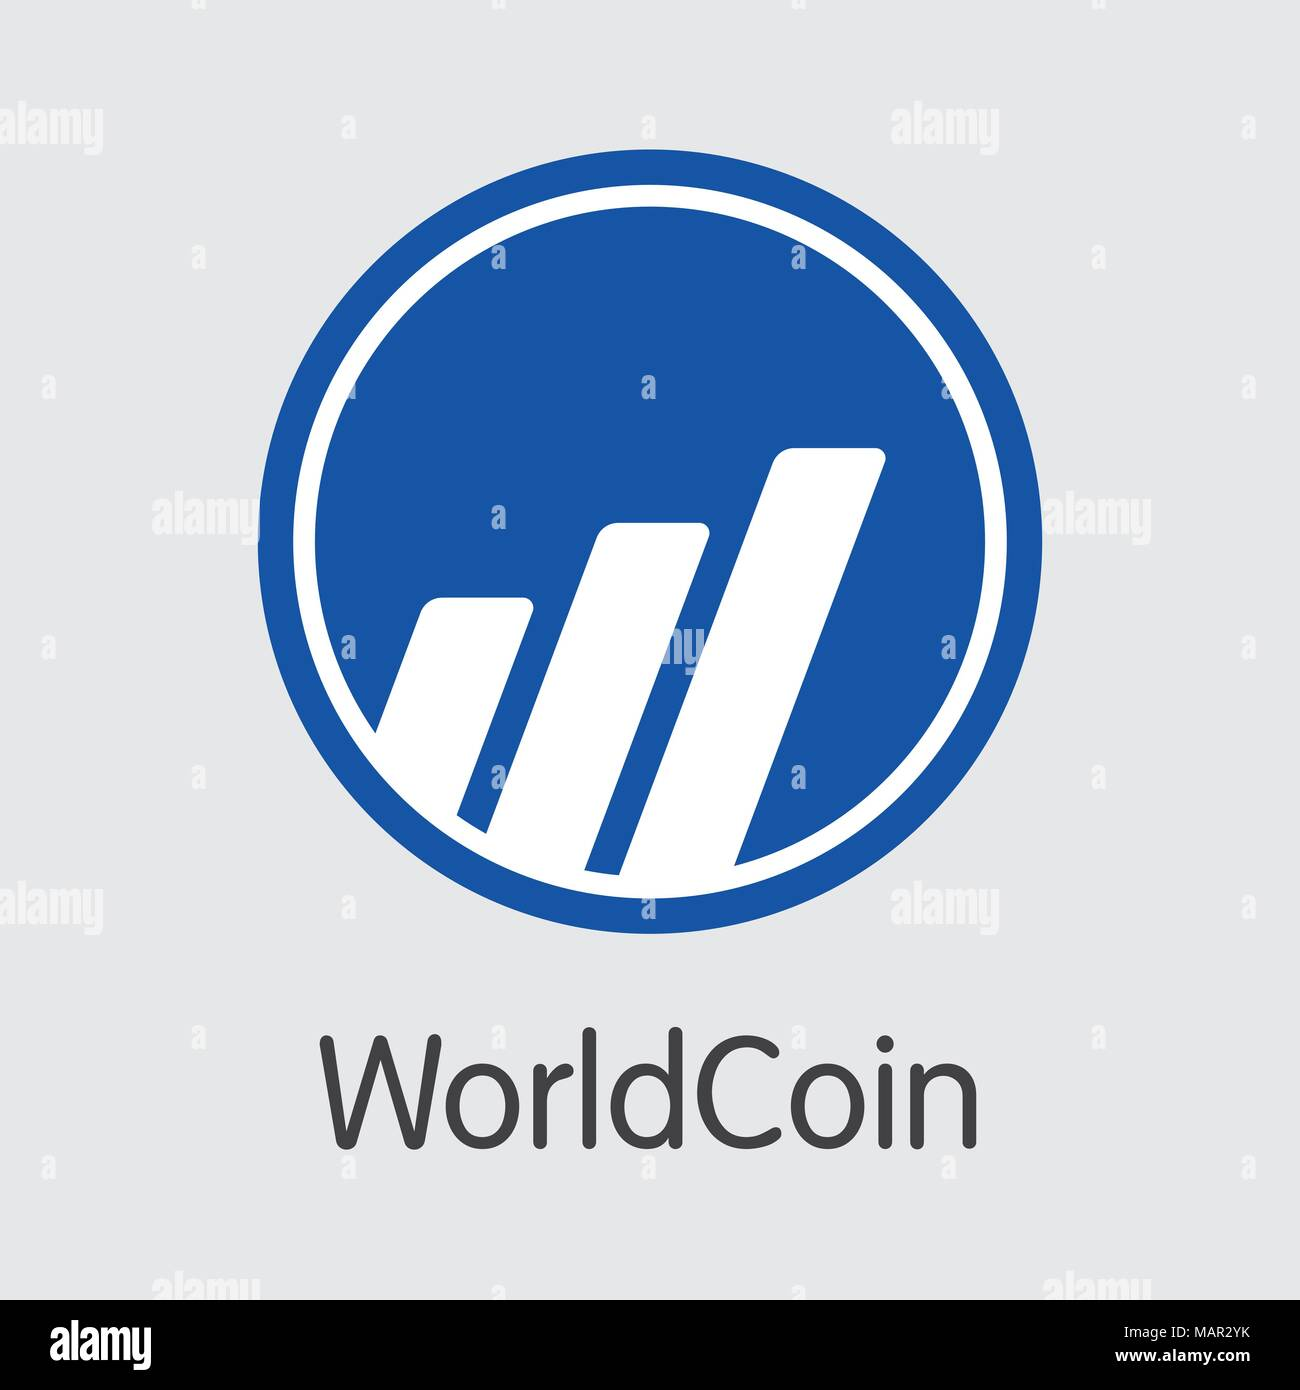 Worldcoin crypto currency news wikipedia matched betting example